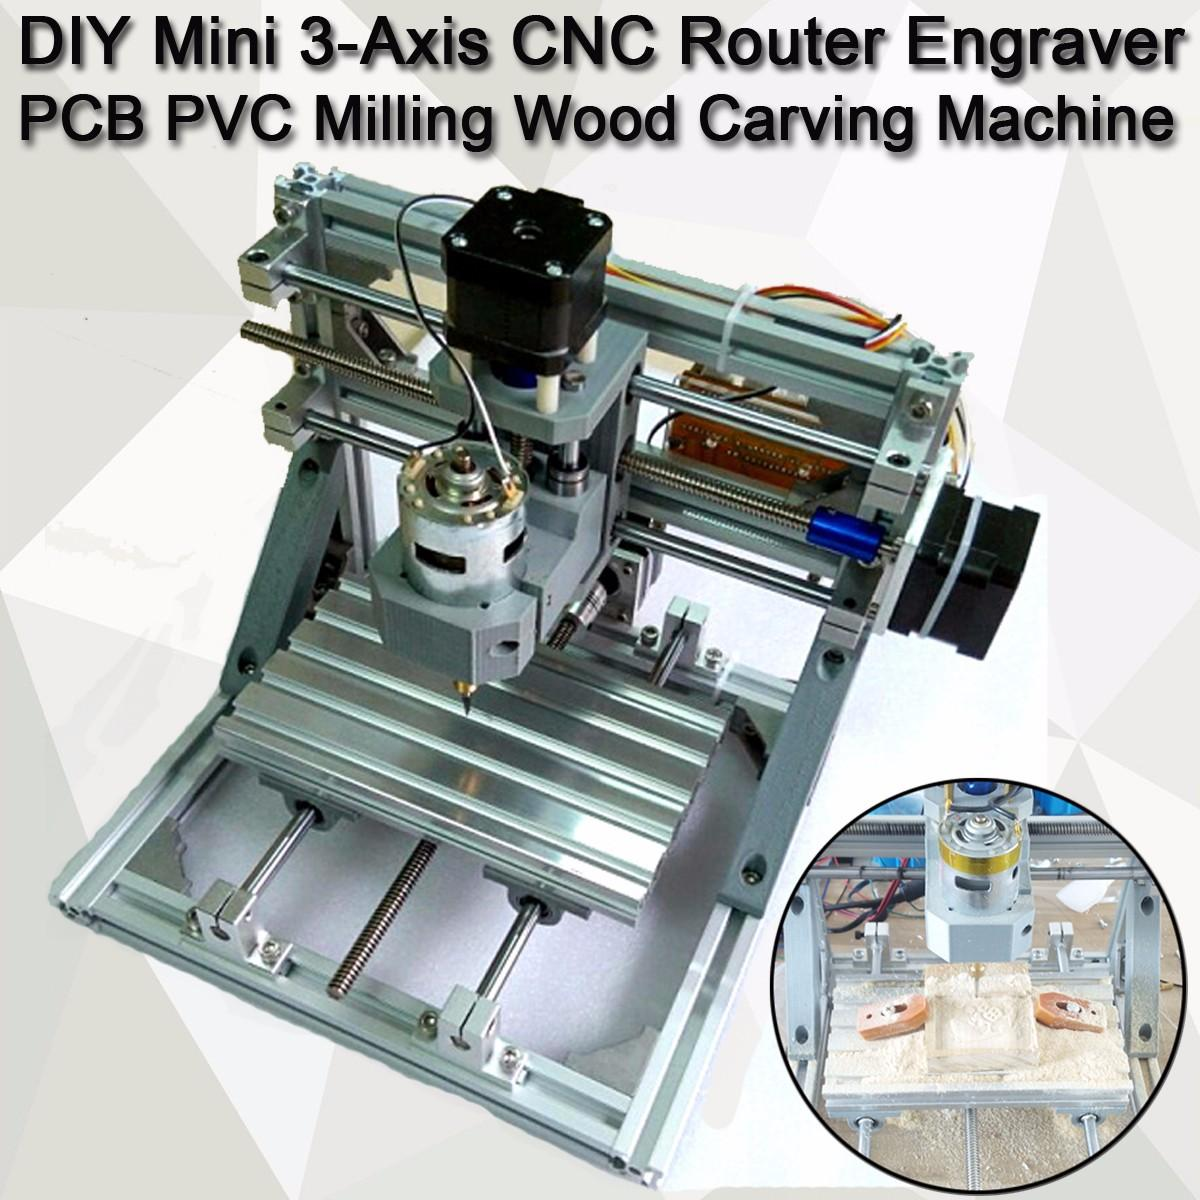 [해외]DIY 미니 3 축 라우터 CNC 1610 GRBL 제어 CNC 기계 조각사 PCB PVC 밀링 나무 조각 작업 영역 16x10.5x3cm/DIY Mini 3 Axis Router CNC 1610 GRBL Control CNC Machine Engraver PC